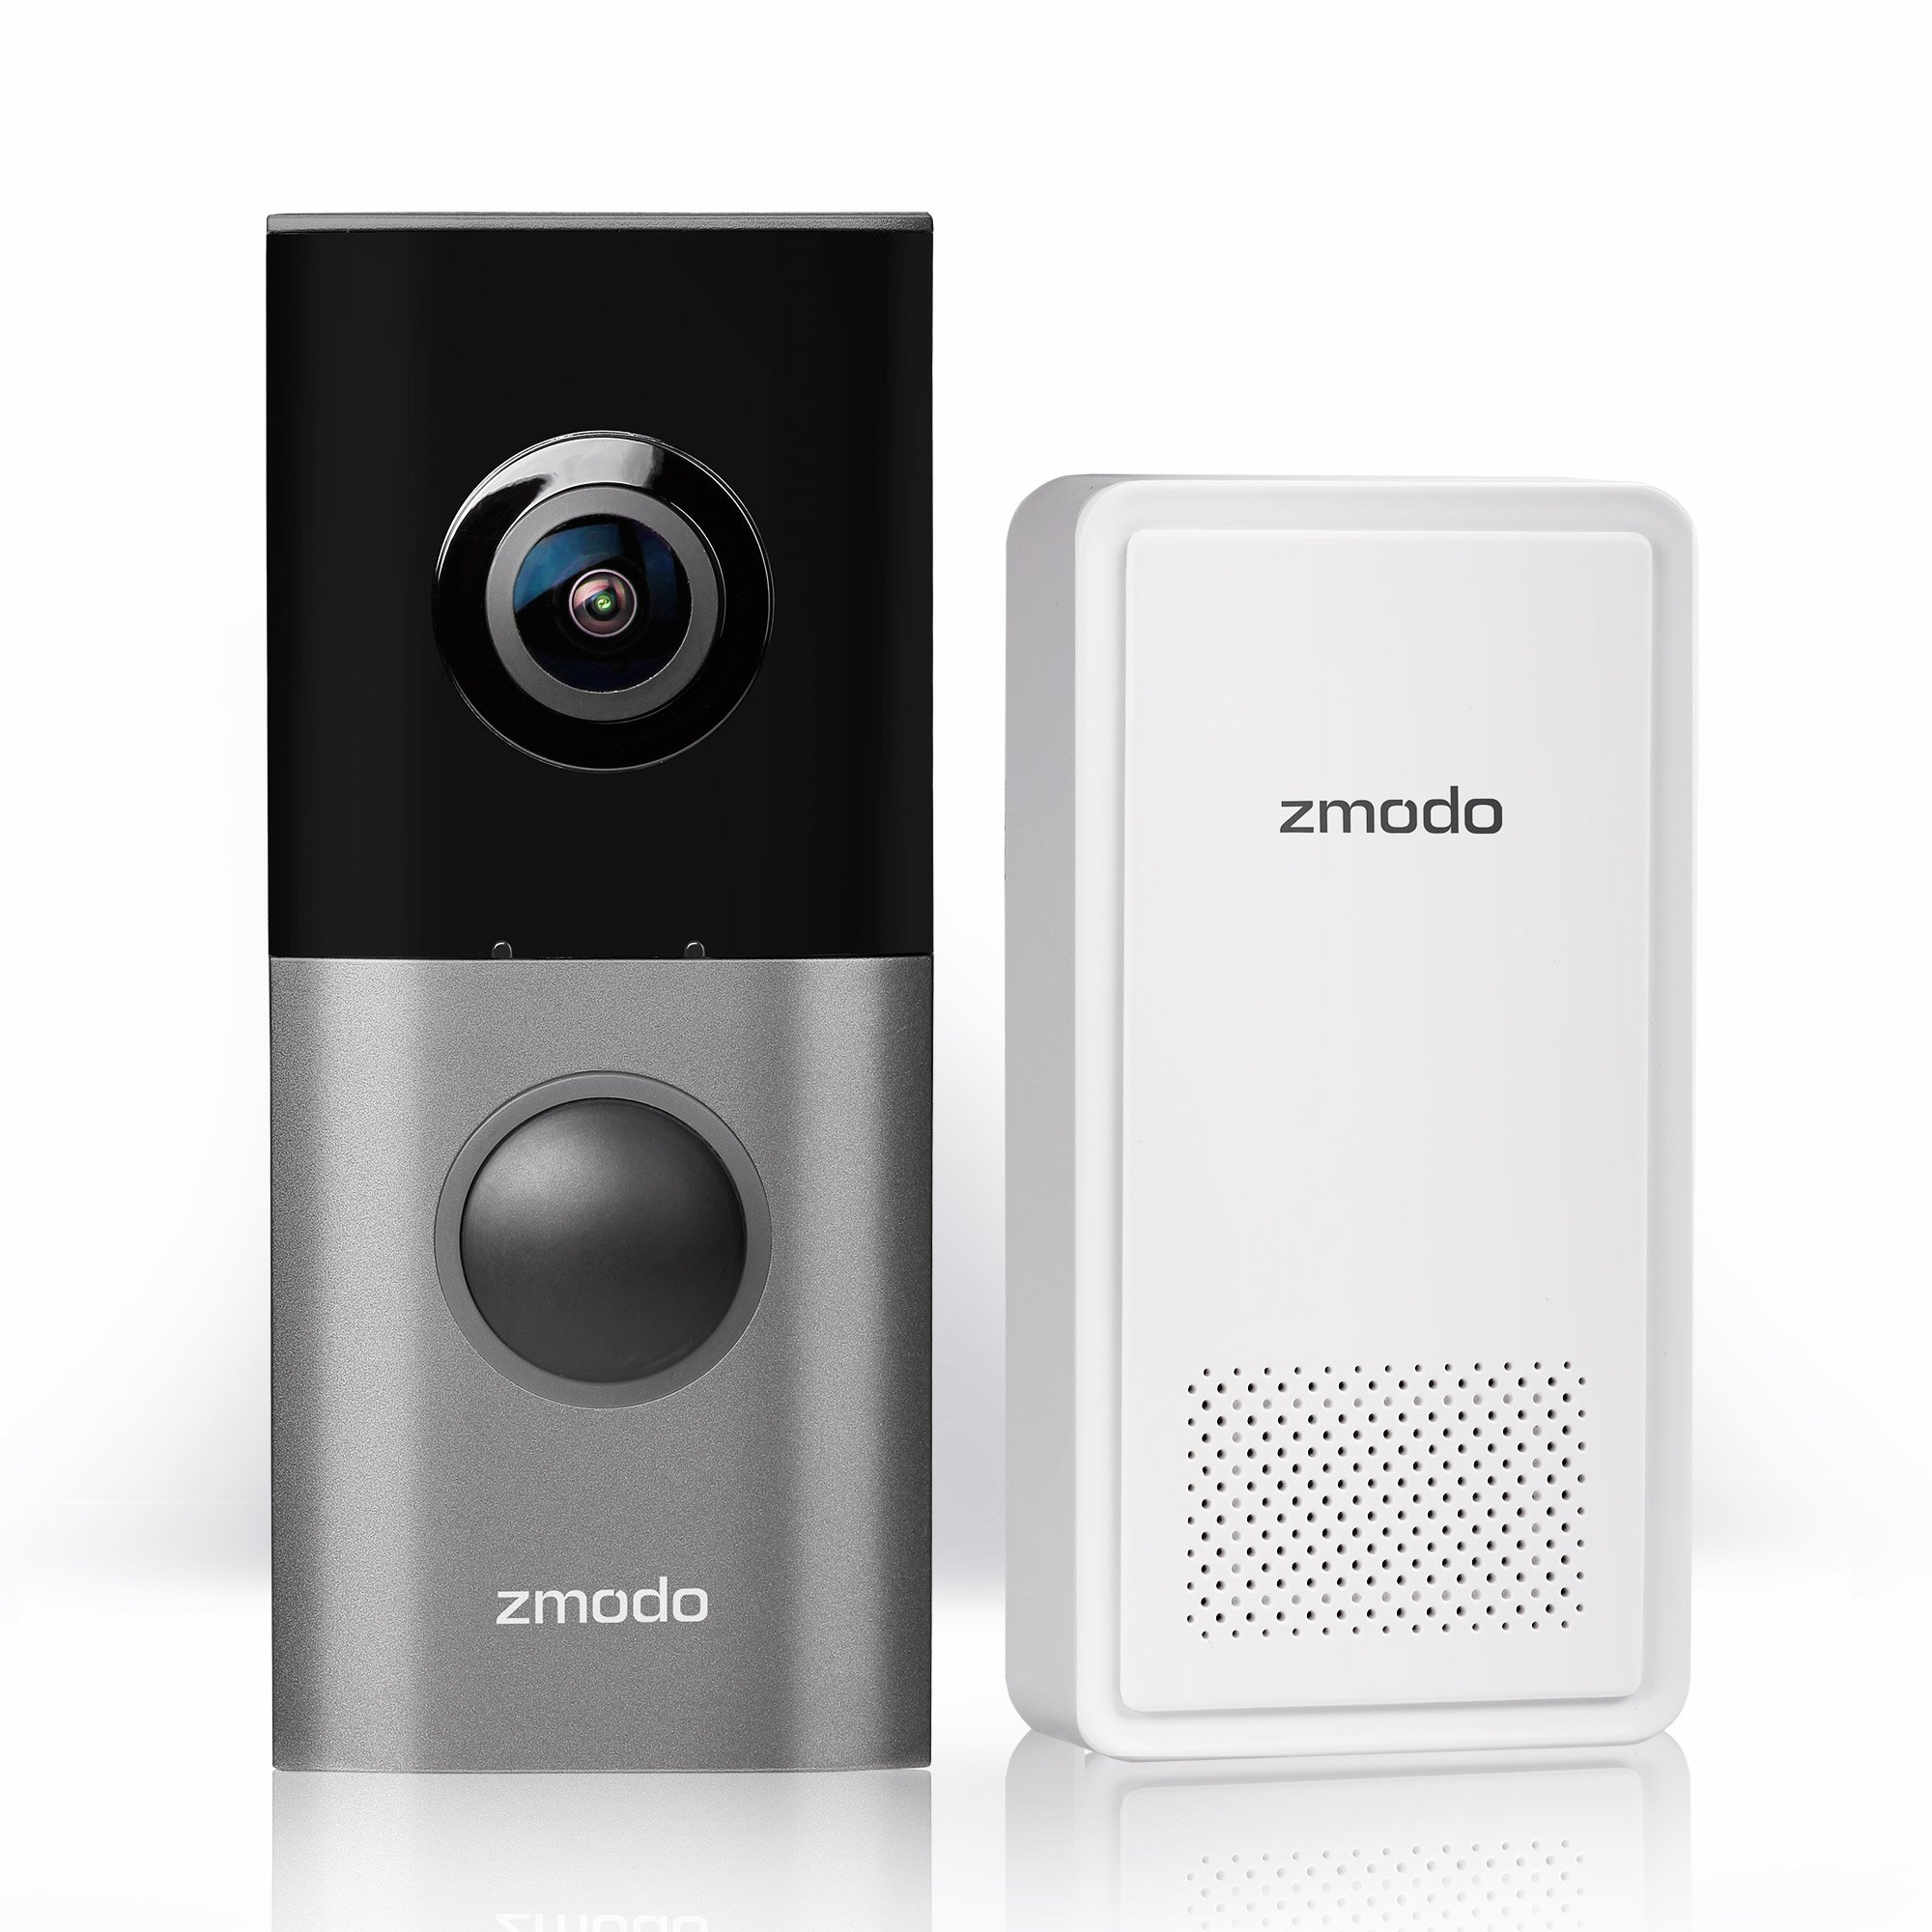 Zmodo Greet Pro Smart Video Doorbell with WiFi Extender, Full HD 180 Degree Wide Angle Camera, Dual Band 5GHz/2.4GHz Capability